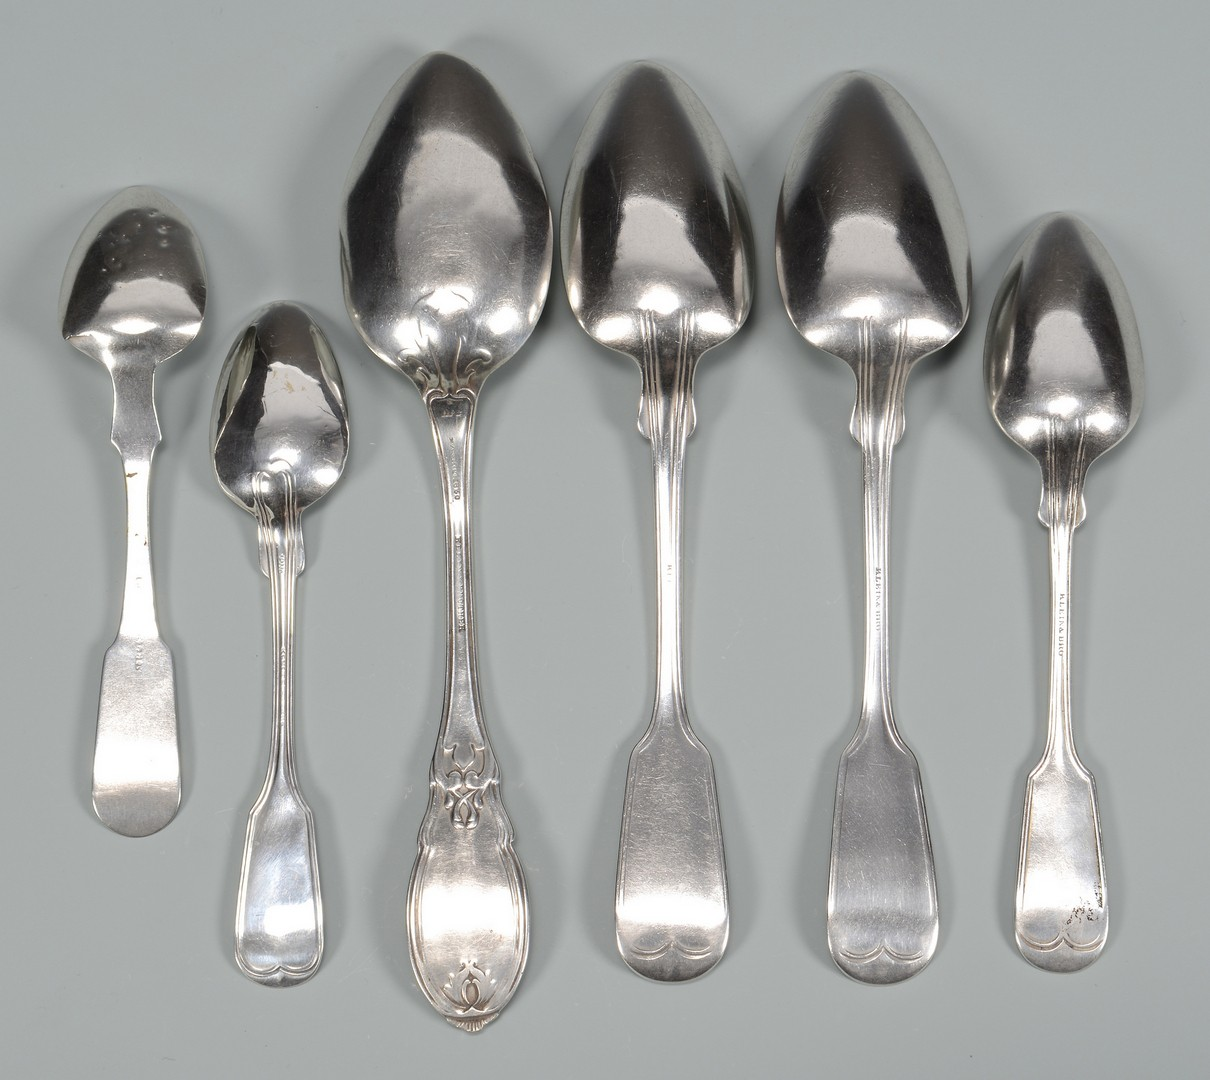 Lot 77: 6 Klein Miss. coin silver spoons